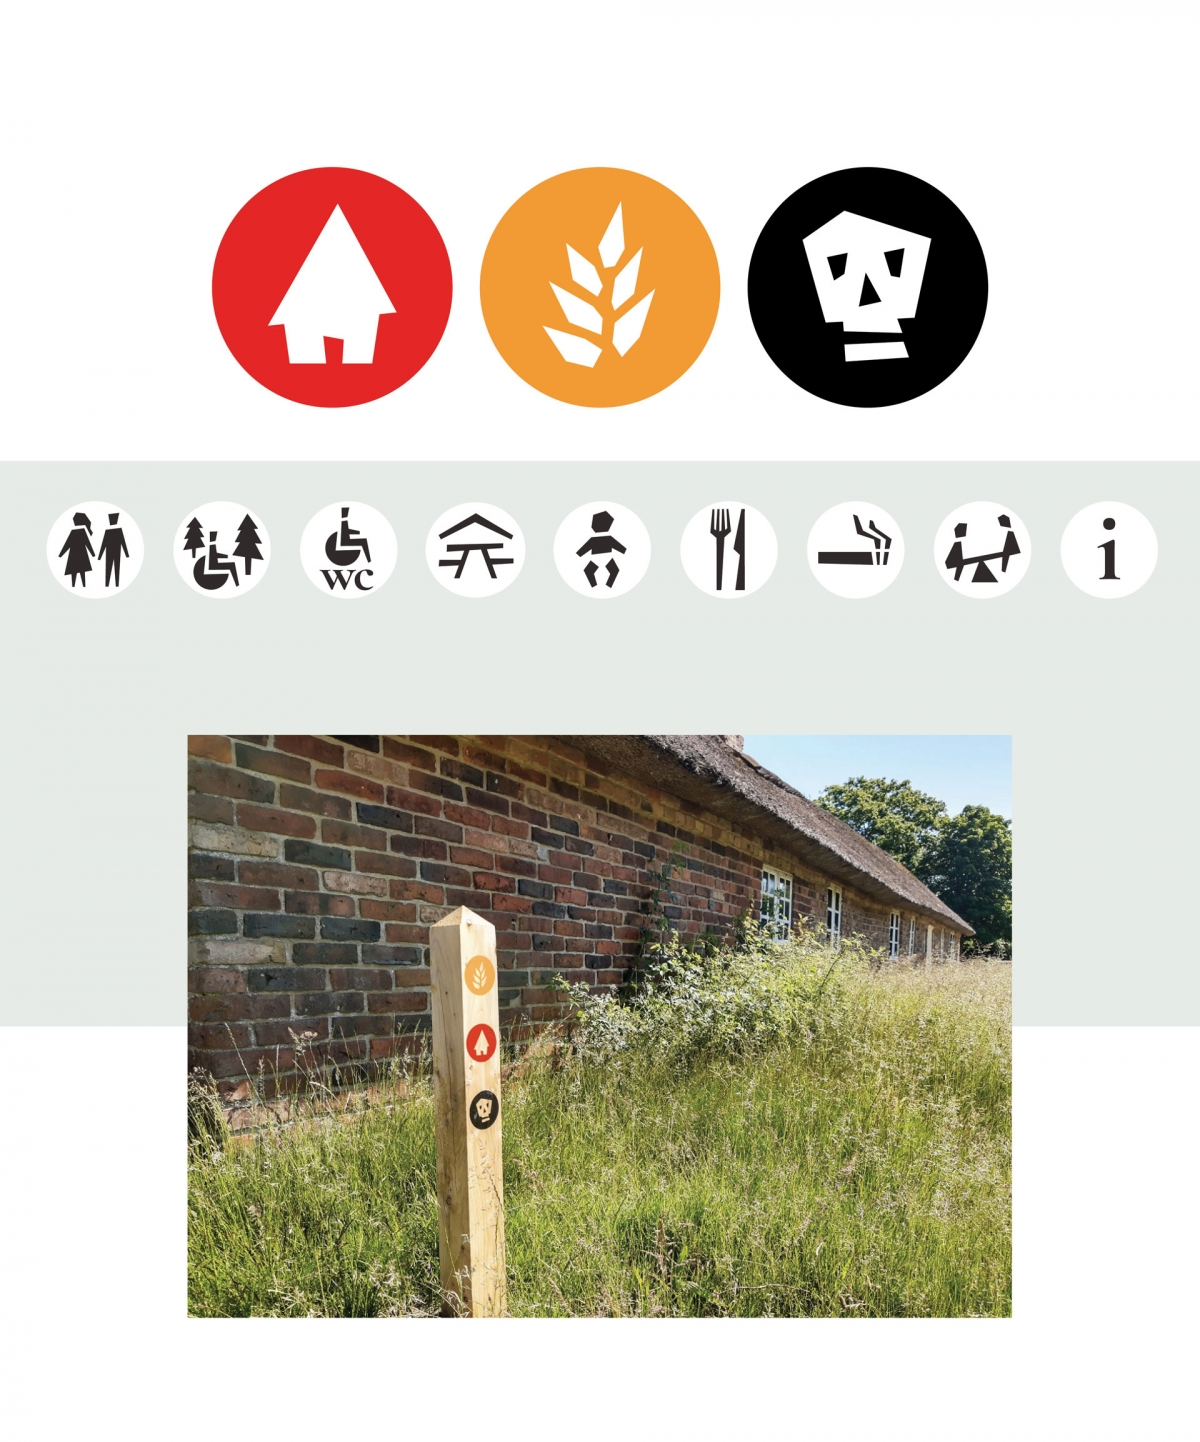 Iconography design for the new routes of the museum